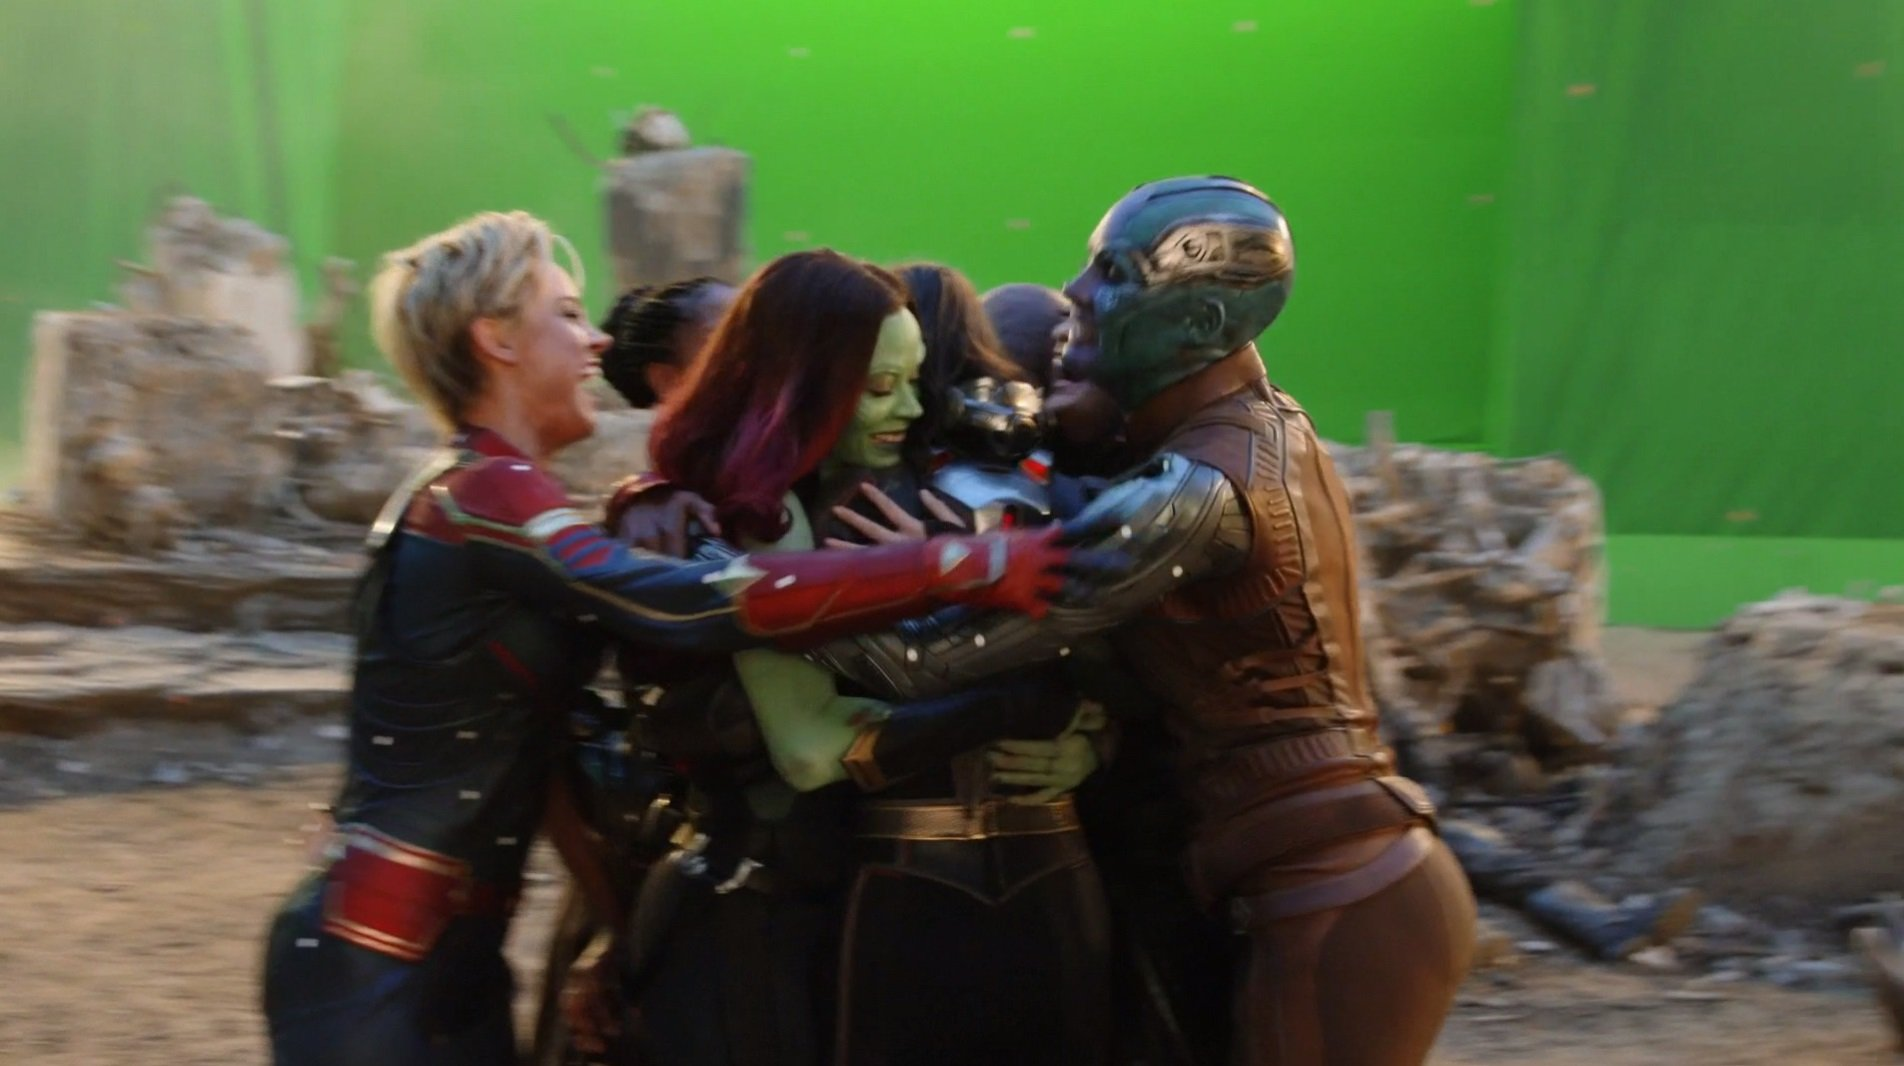 Watch All Six Deleted Scenes From Avengers: Endgame In One Video